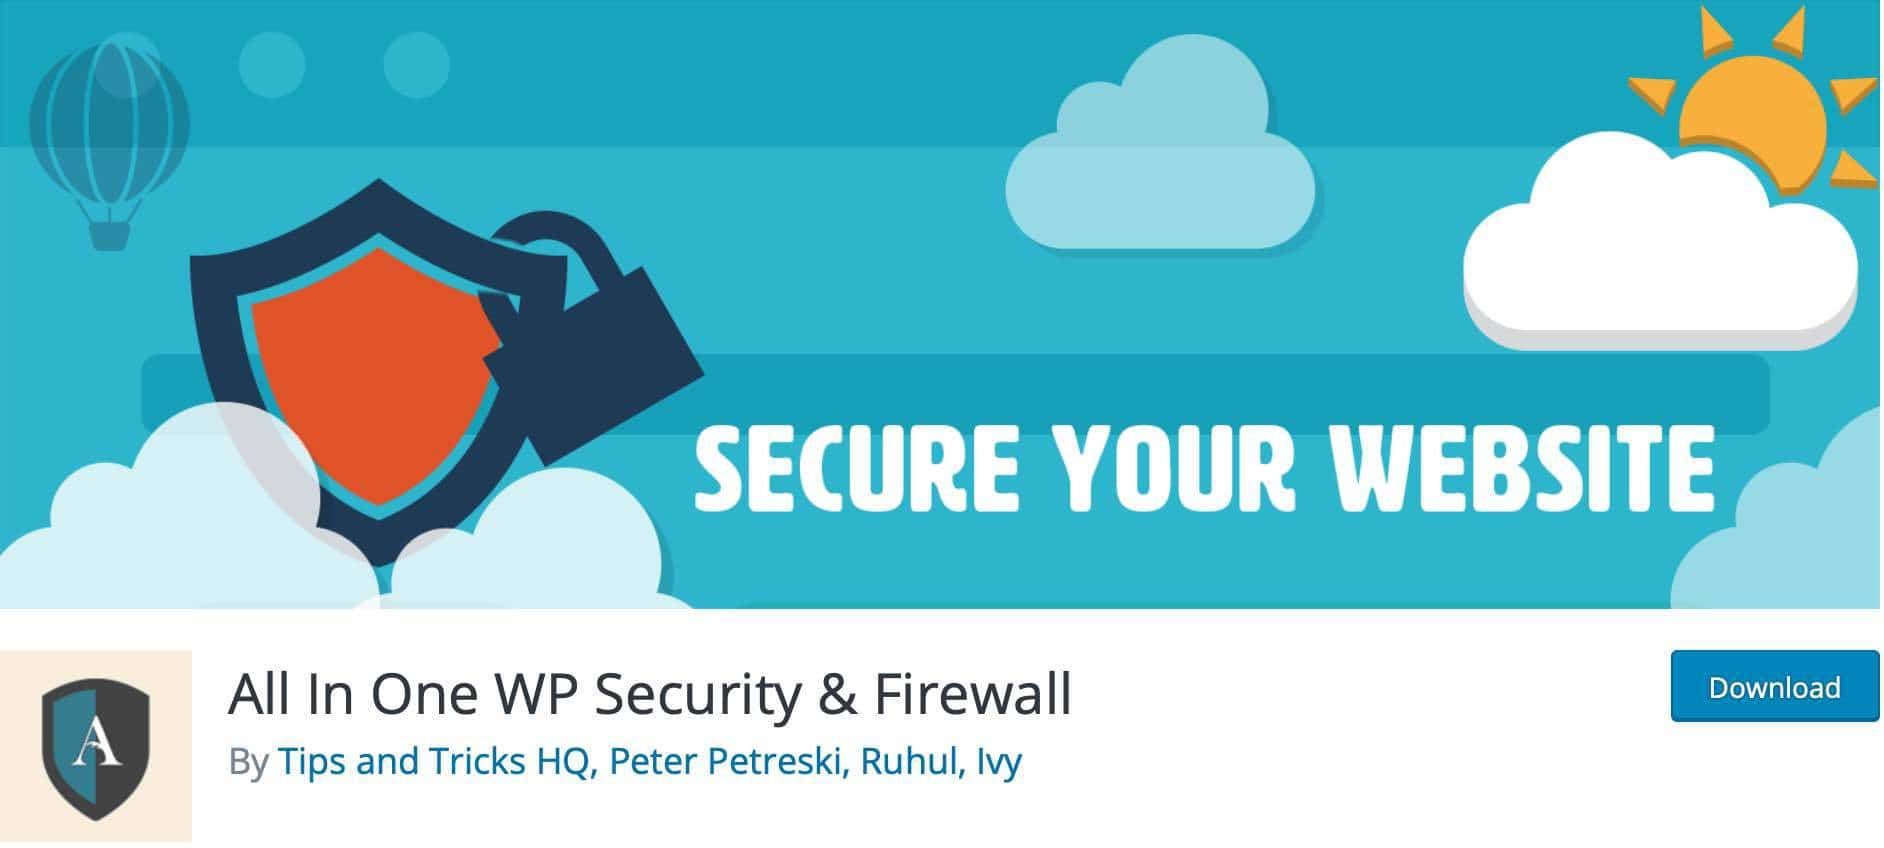 add some extra security and firewall to your site